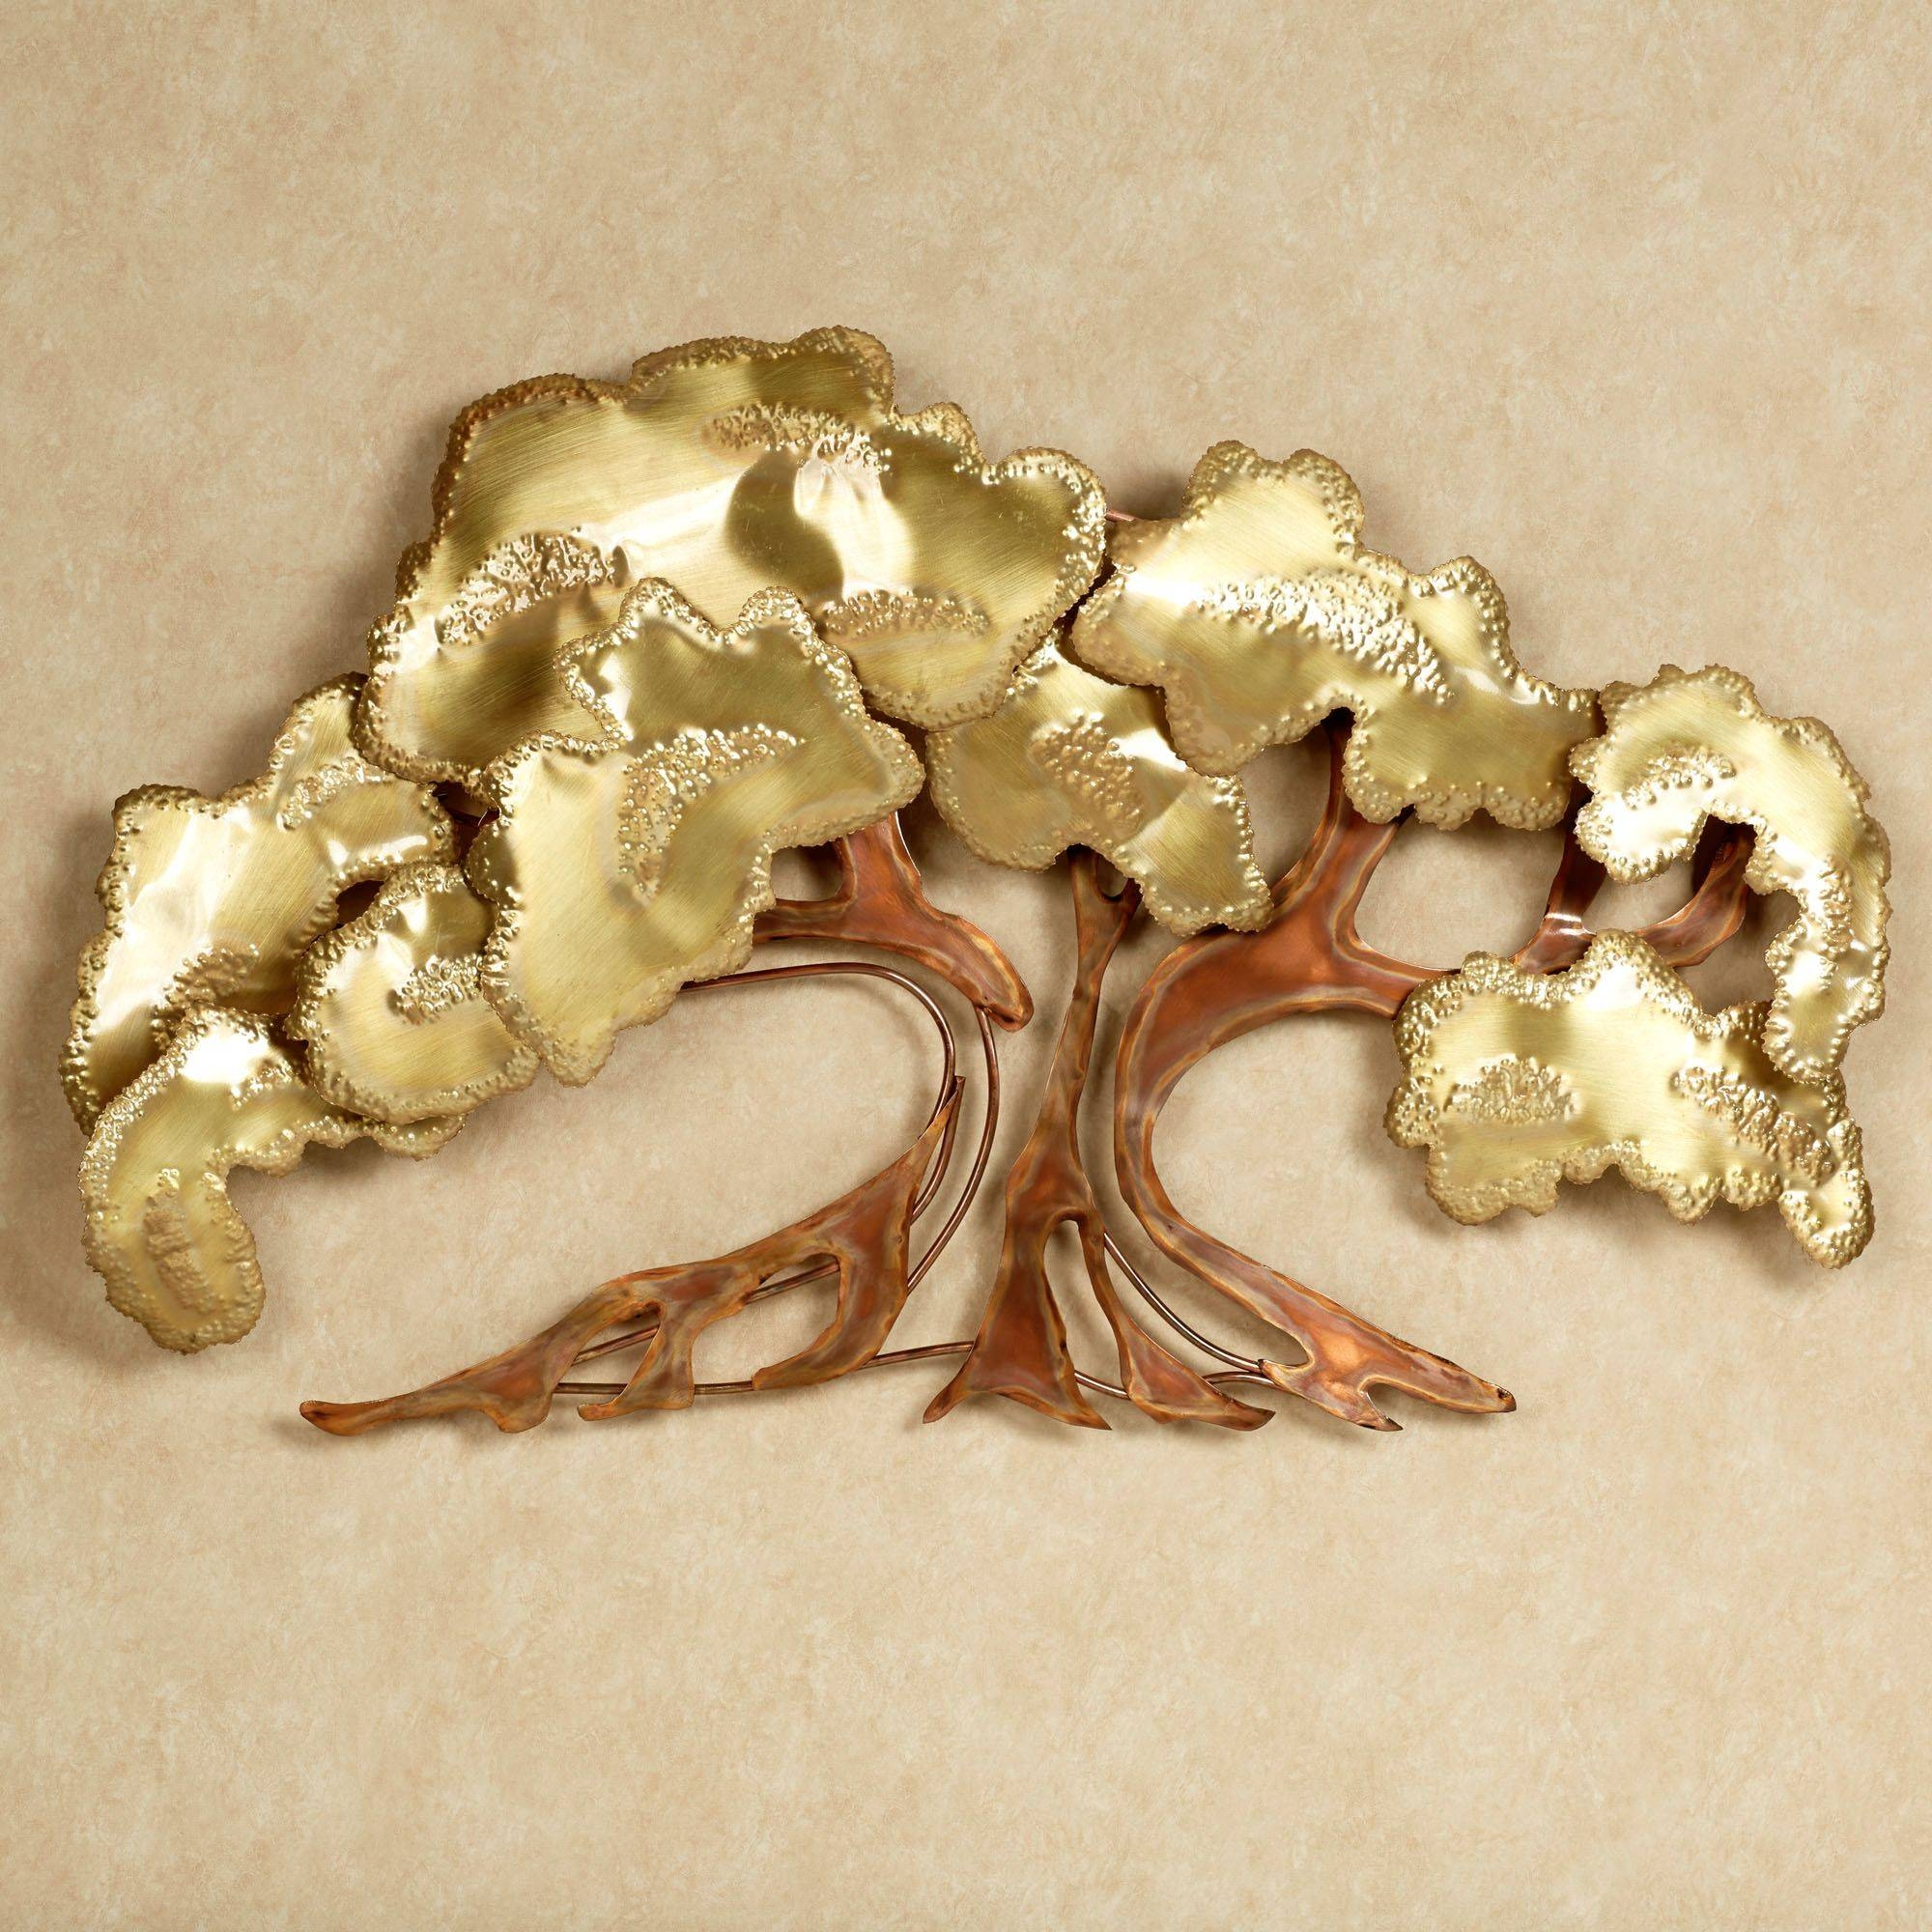 Unique Tree Of Life Metal Wall Art Decor Sculpture Desaign With pertaining to Recent Unique Metal Wall Art